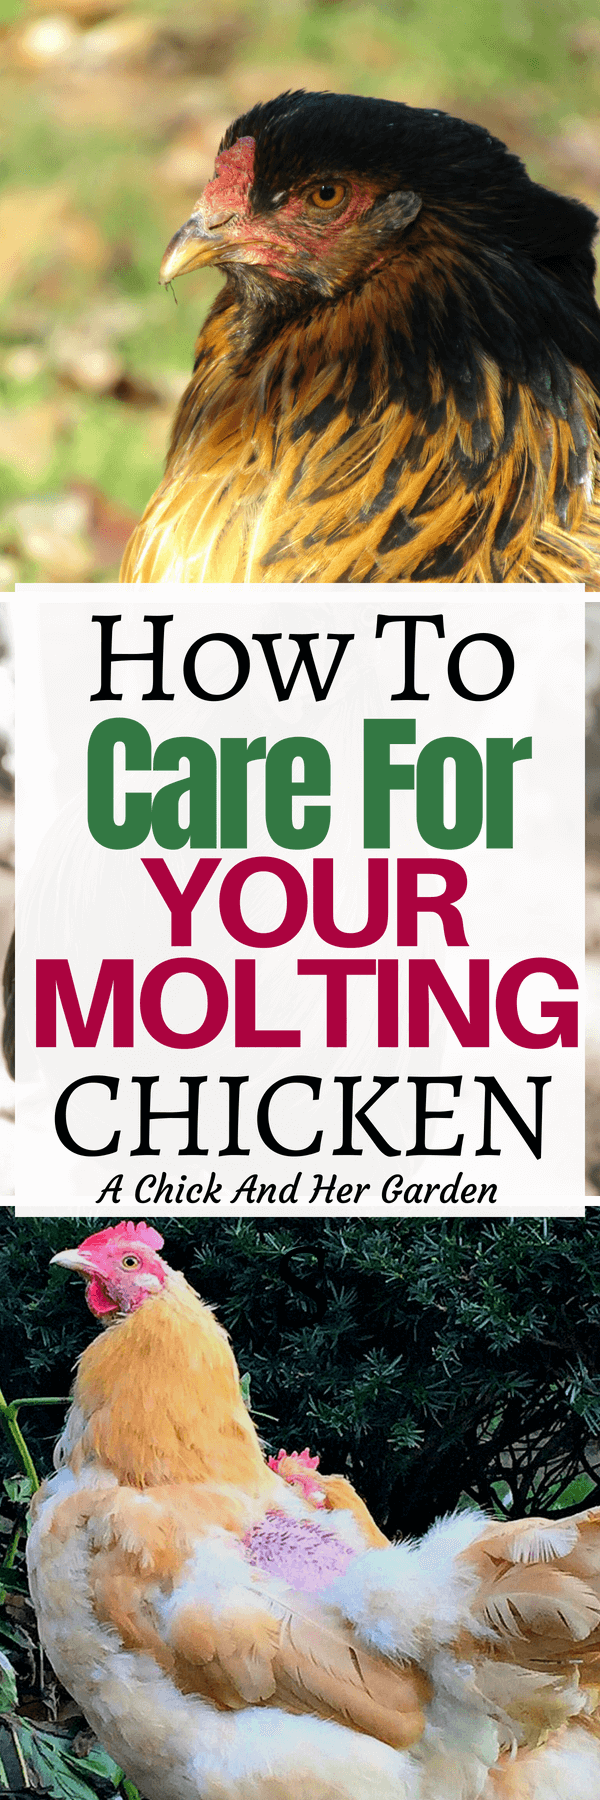 I panicked the first time I saw my chickens going bald! But these steps have helped my poor flck make it through the necessary process of molting each Fall! #moltingchickens #backyardchickens #raisingchickens #achickandhergarden